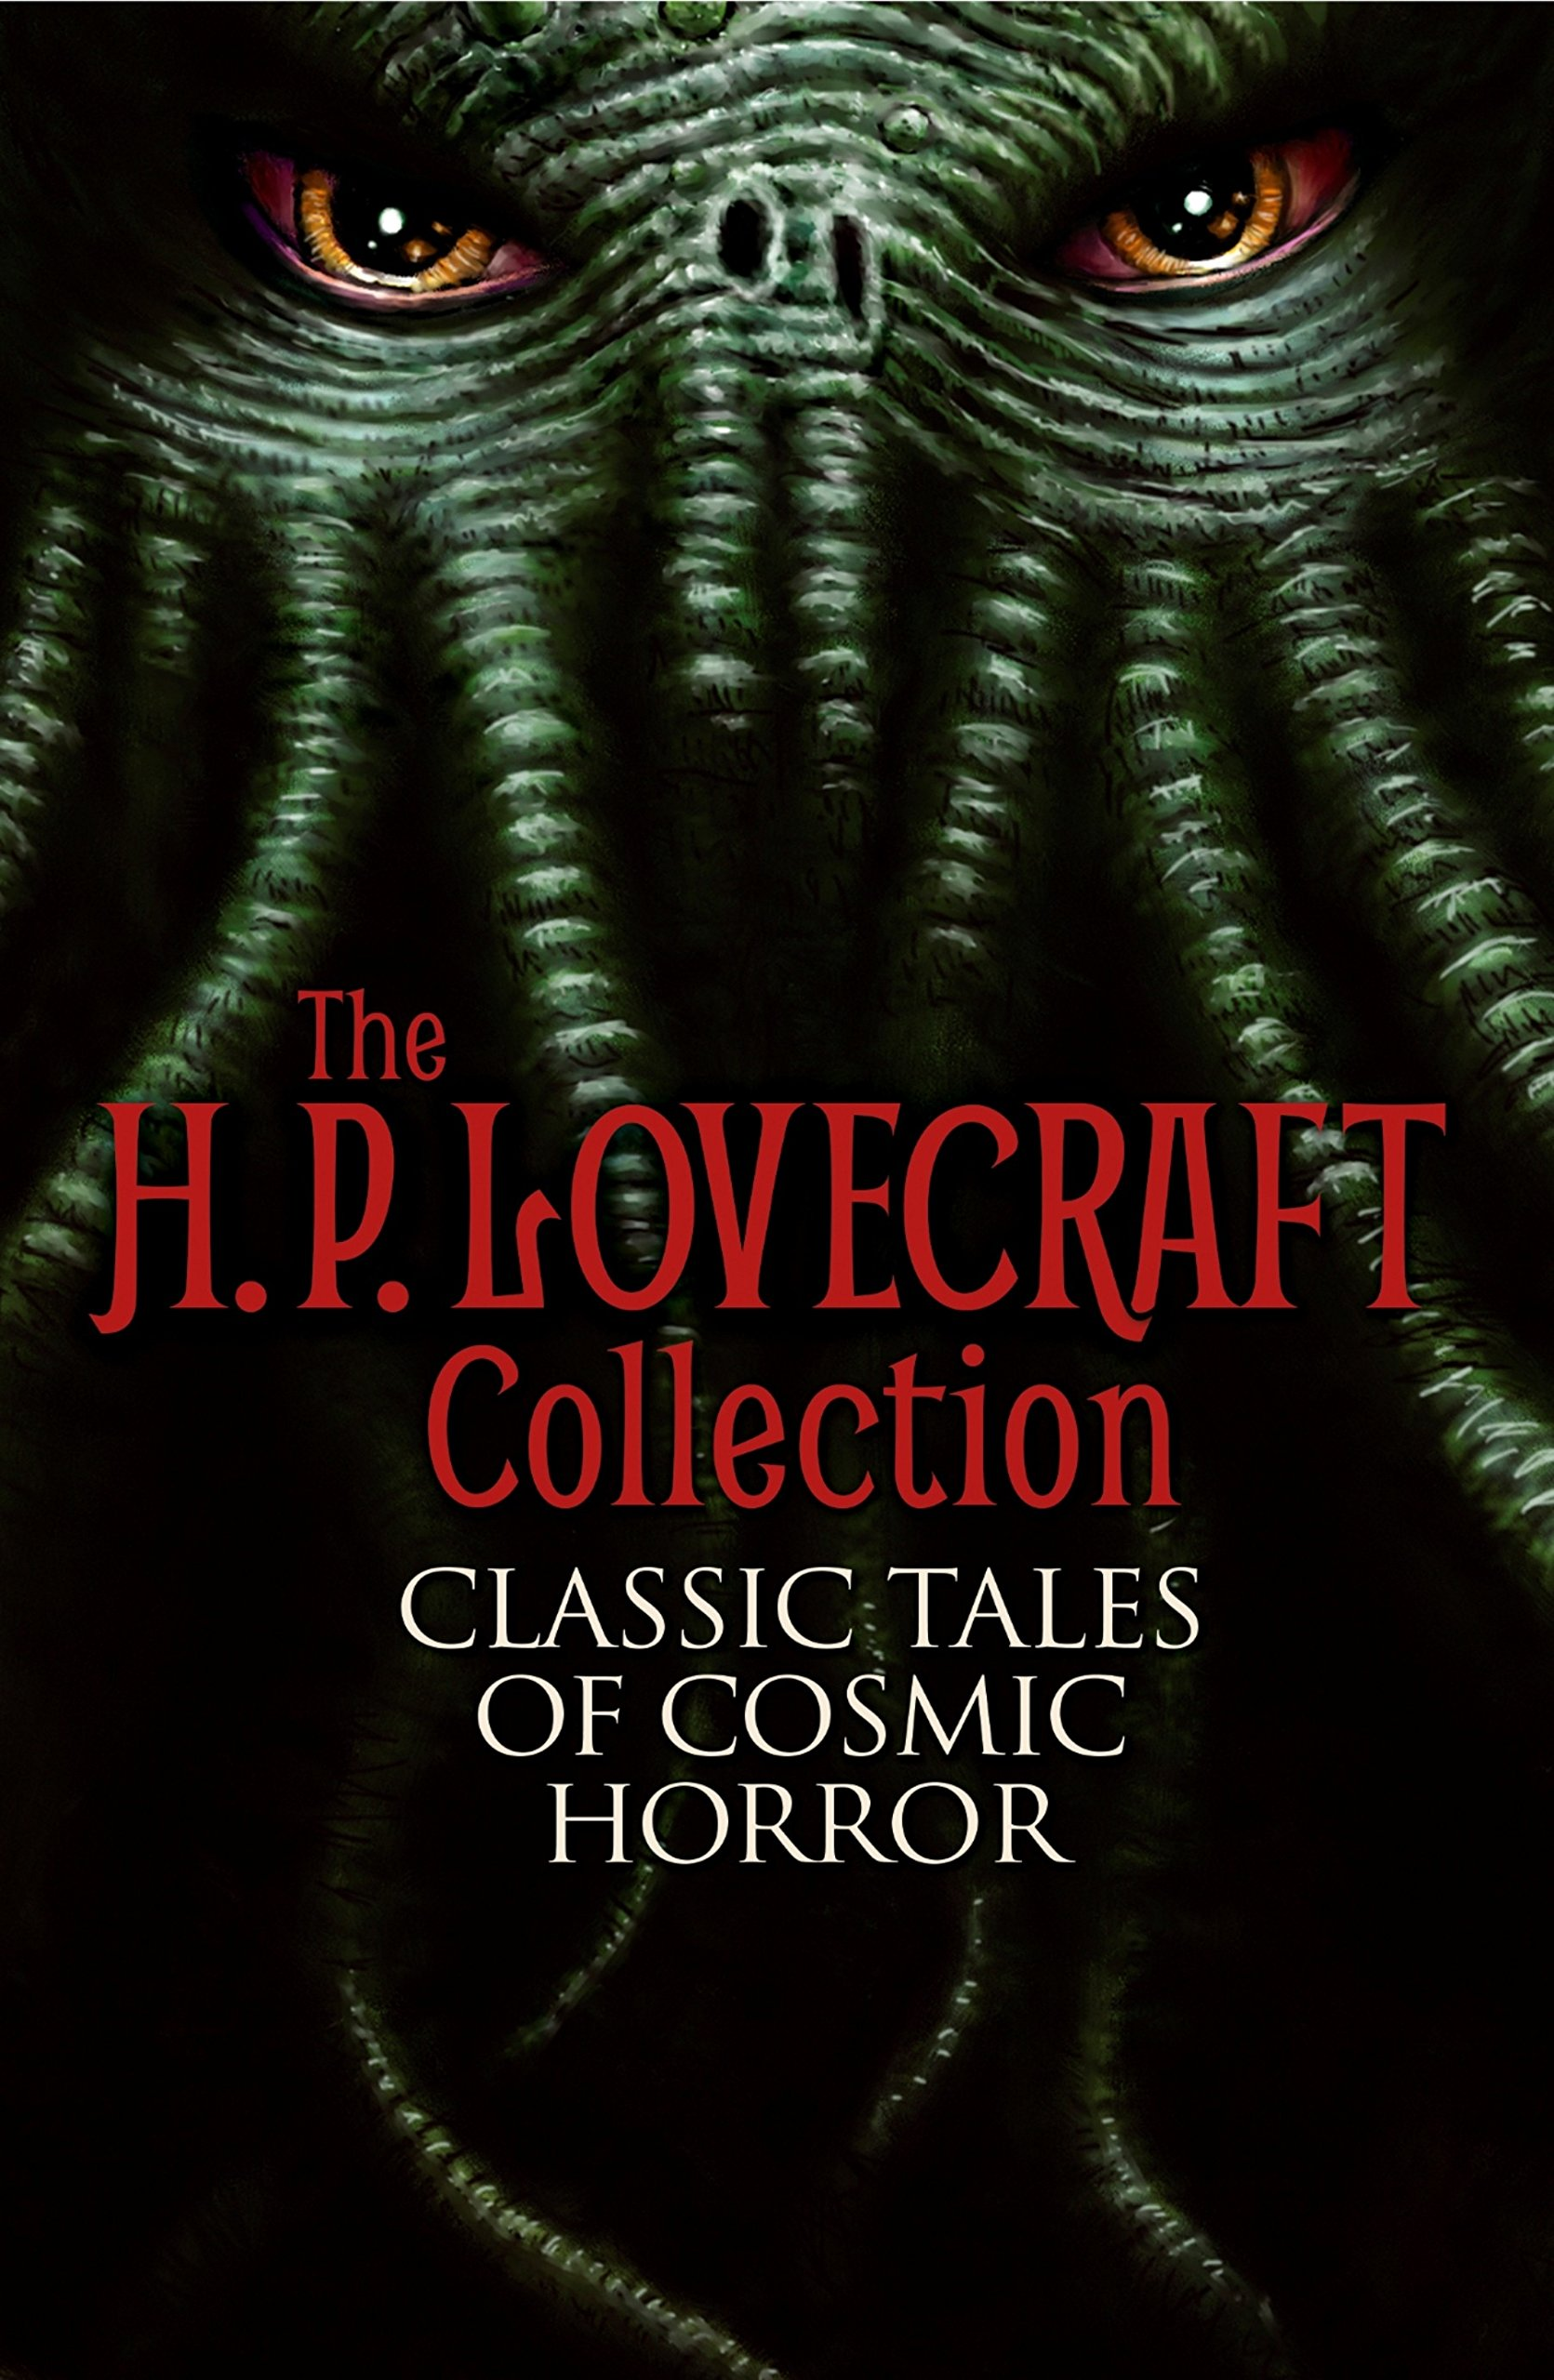 The H. P. Lovecraft Collection: Classic Tales of Cosmic Horror: H. P.  Lovecraft: 9781784282479: Amazon.com: Books